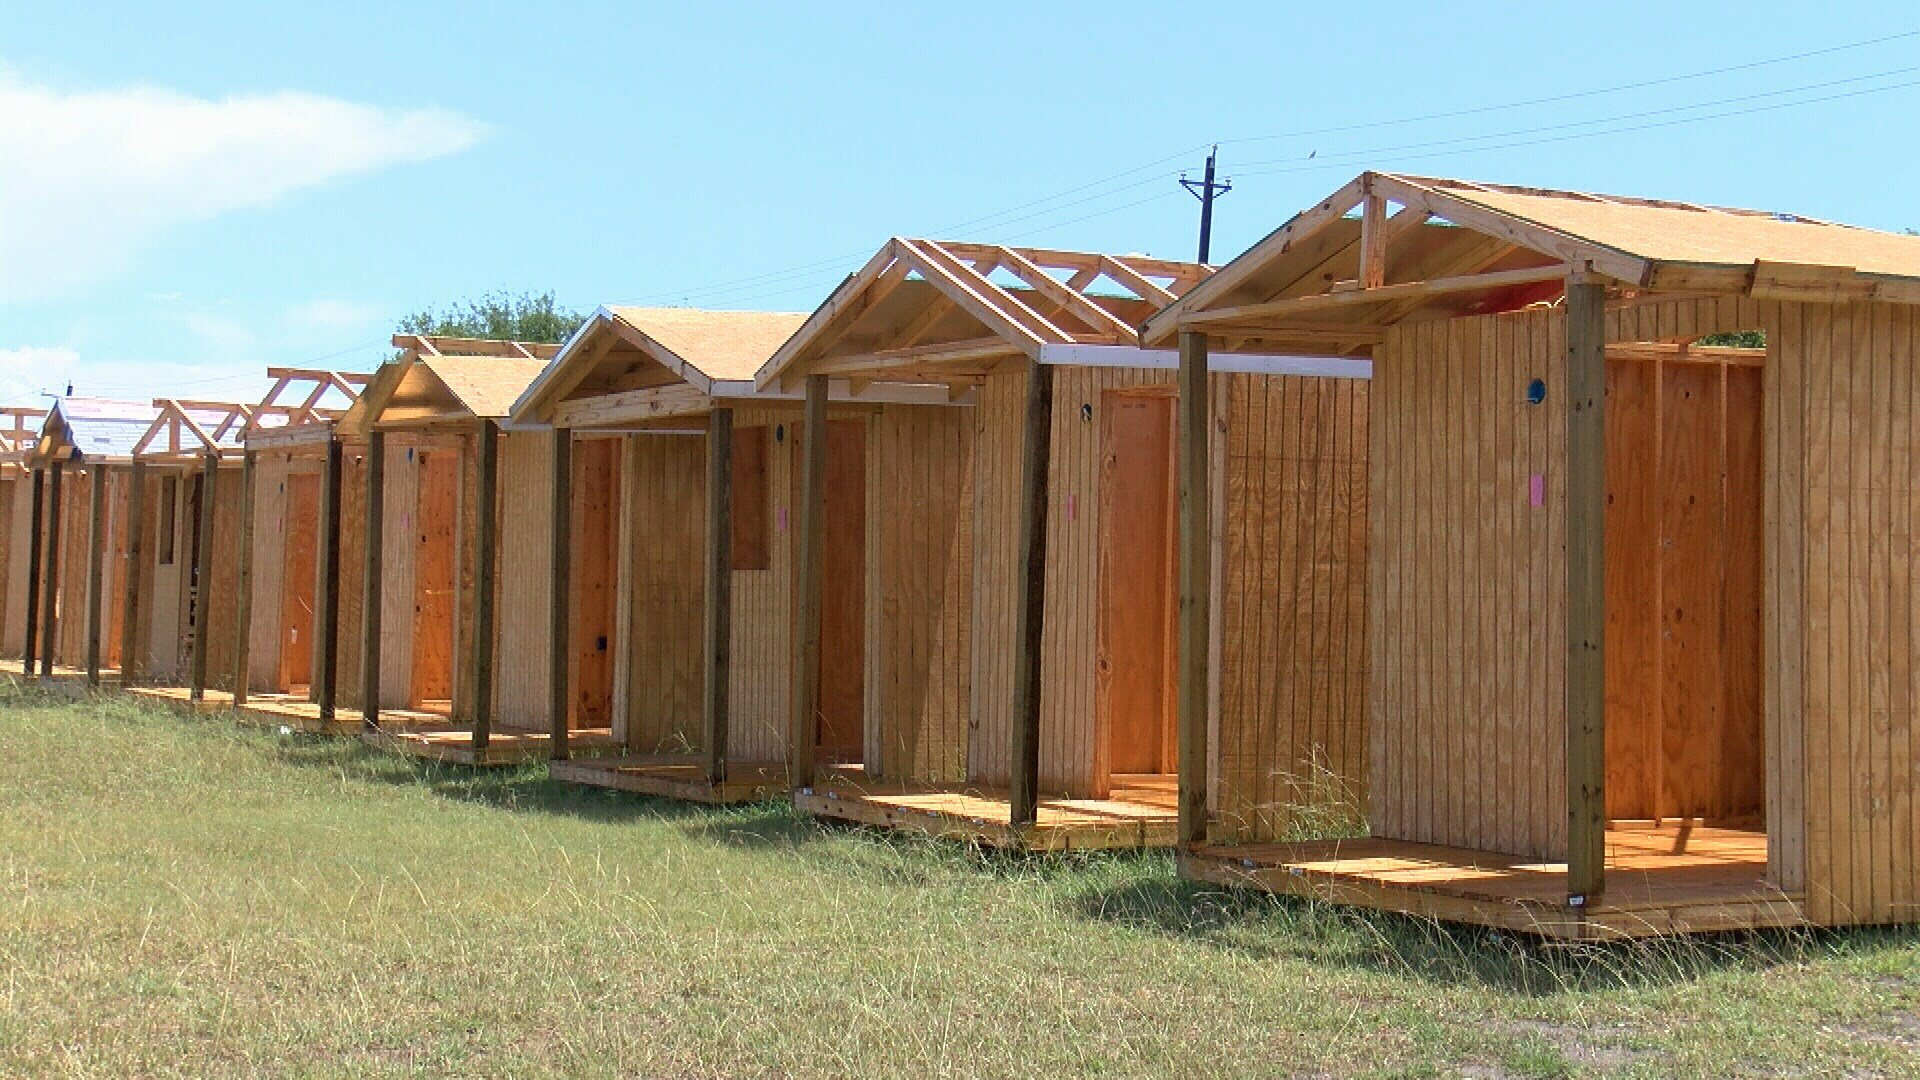 These structures will be transformed into tiny shelters as Corpus Christi community leaders move forward with plans to build a village for the homeless.